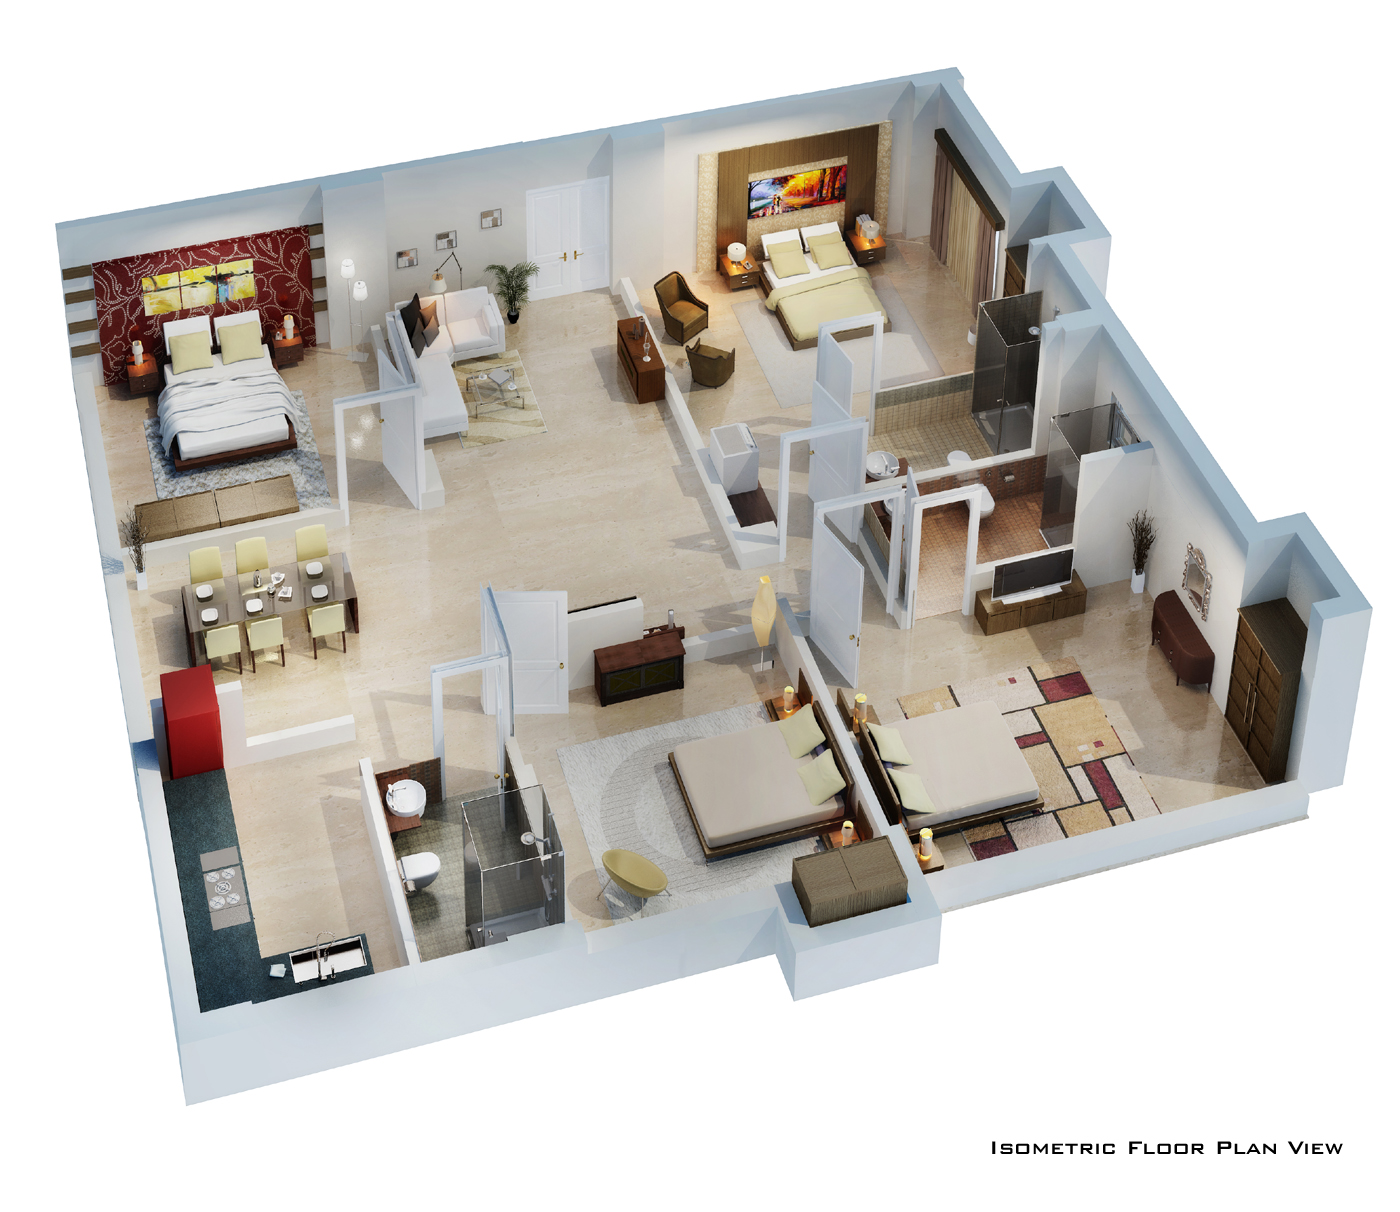 Isometric floor plan render in 3d by pradipta seth at House plan 3d view